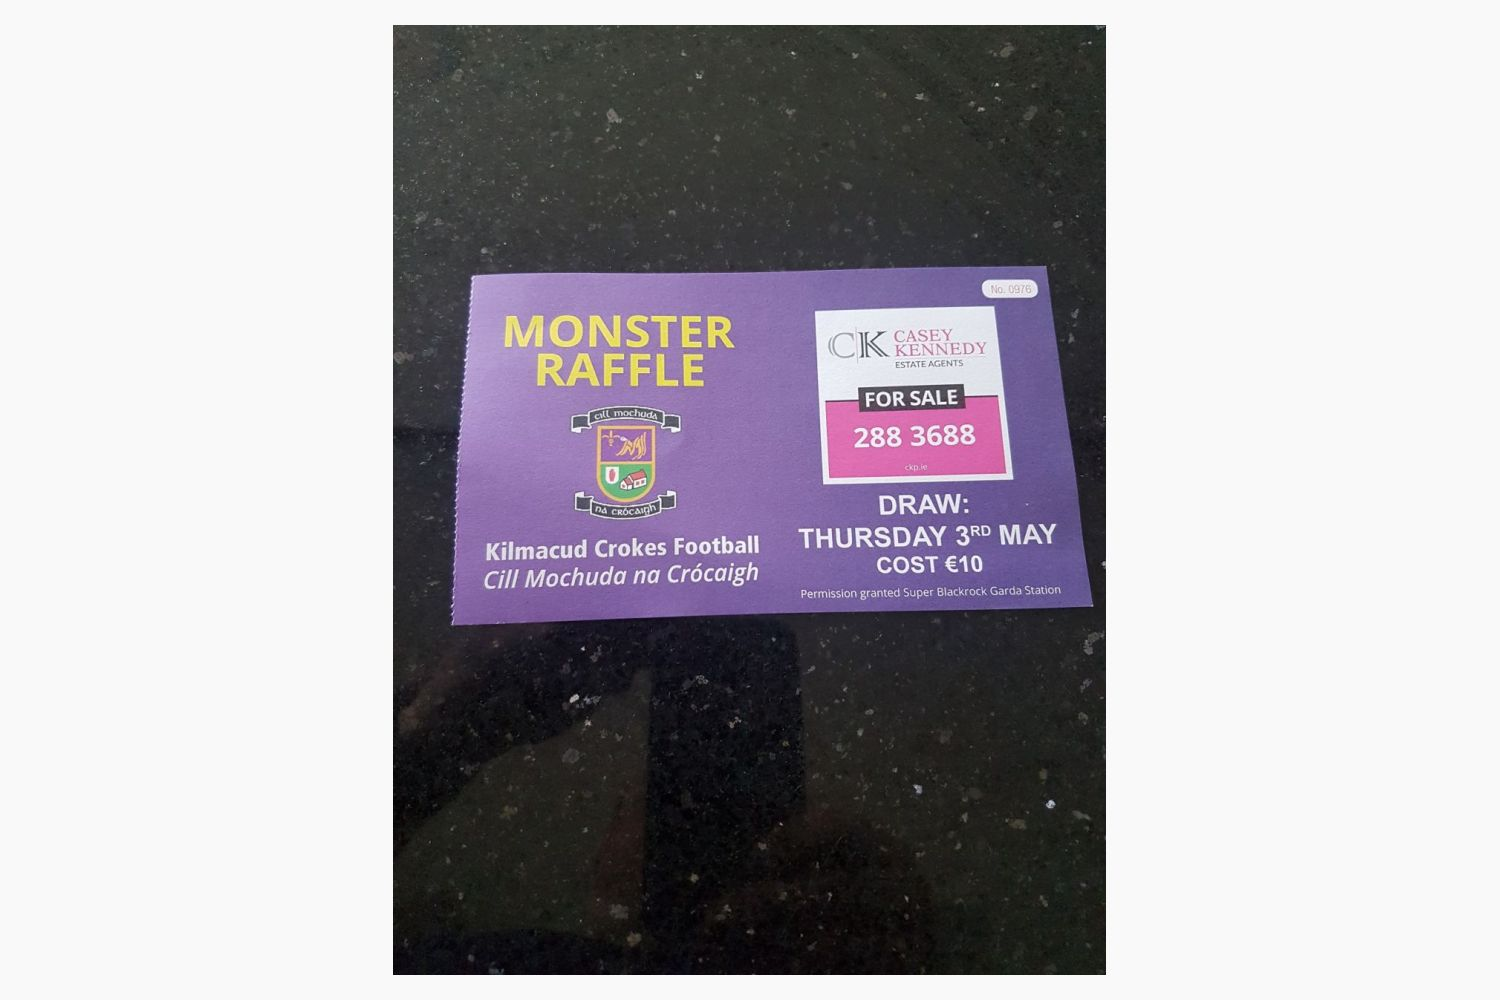 Football Monster Draw Results